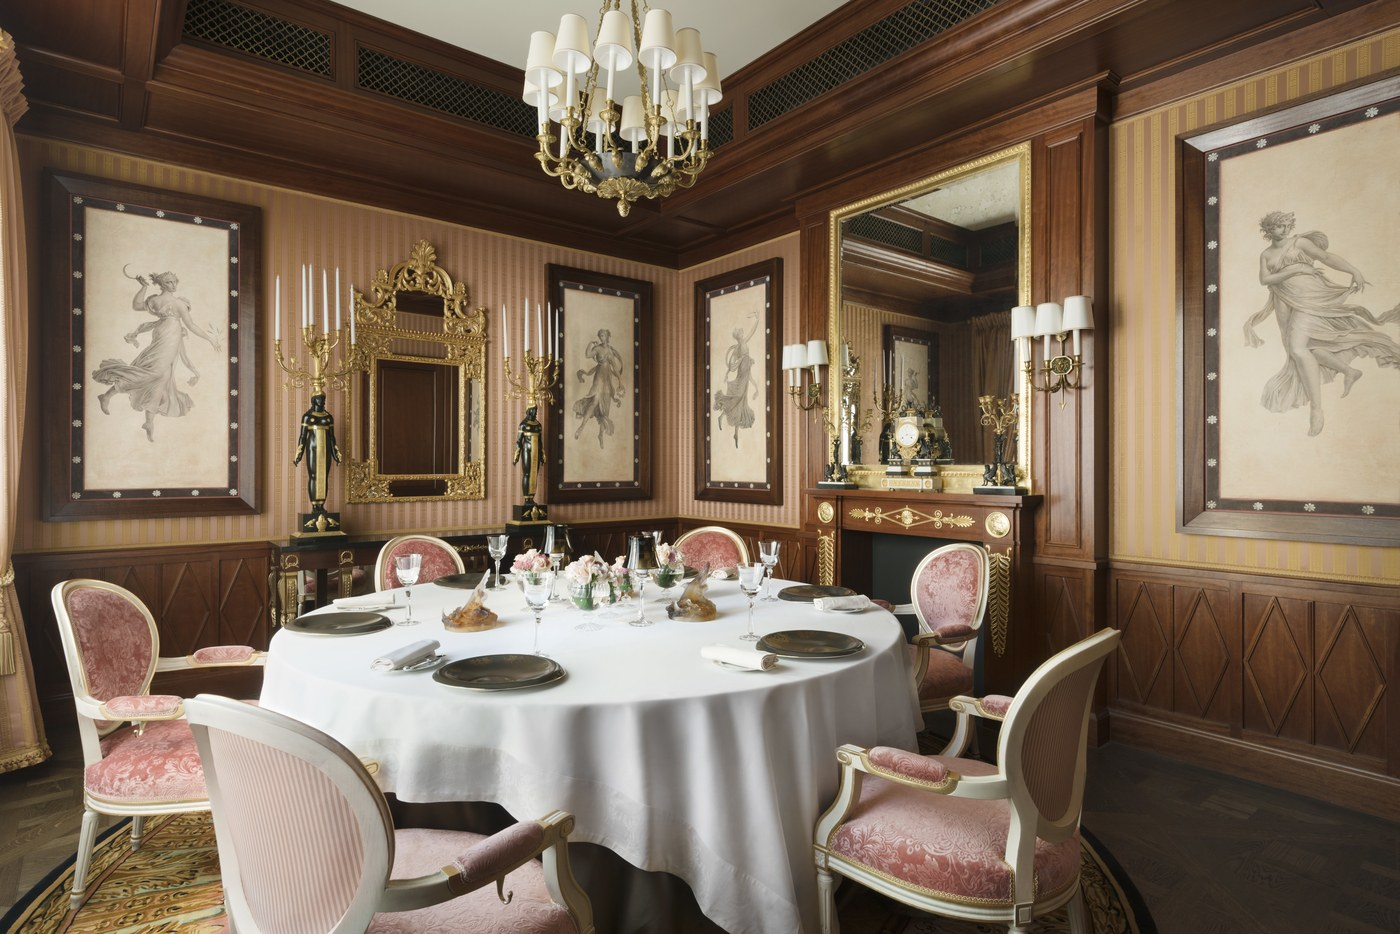 private dining room The World's Most Remarkable Private Dining Rooms 2 The Worlds Most Remarkable Private Dining Rooms